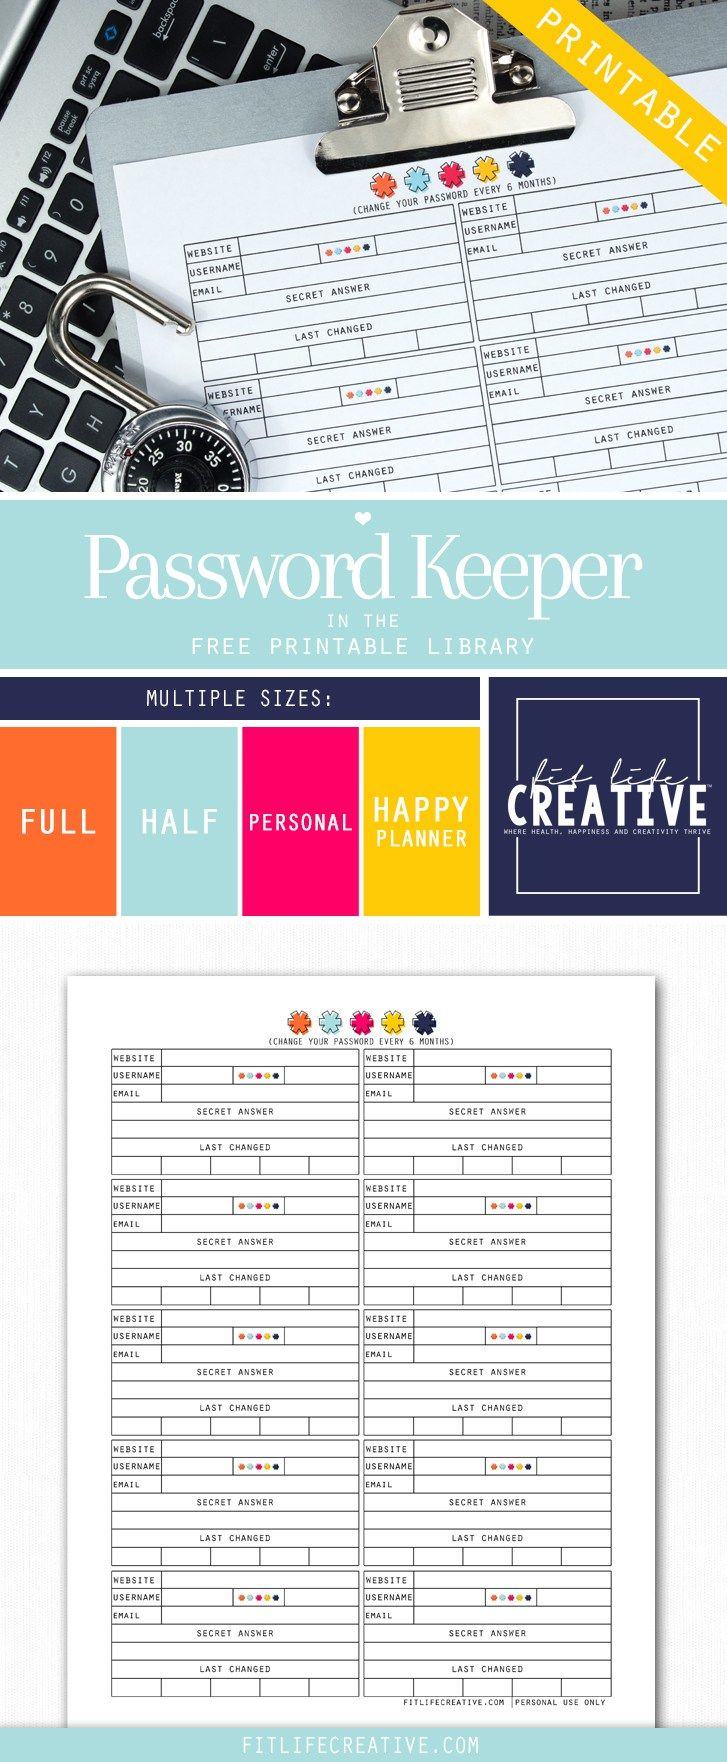 Free printable Password Keeper planner insert. Available in multiple sizes including Full page, half page, personal size and Happy Planner sizes.